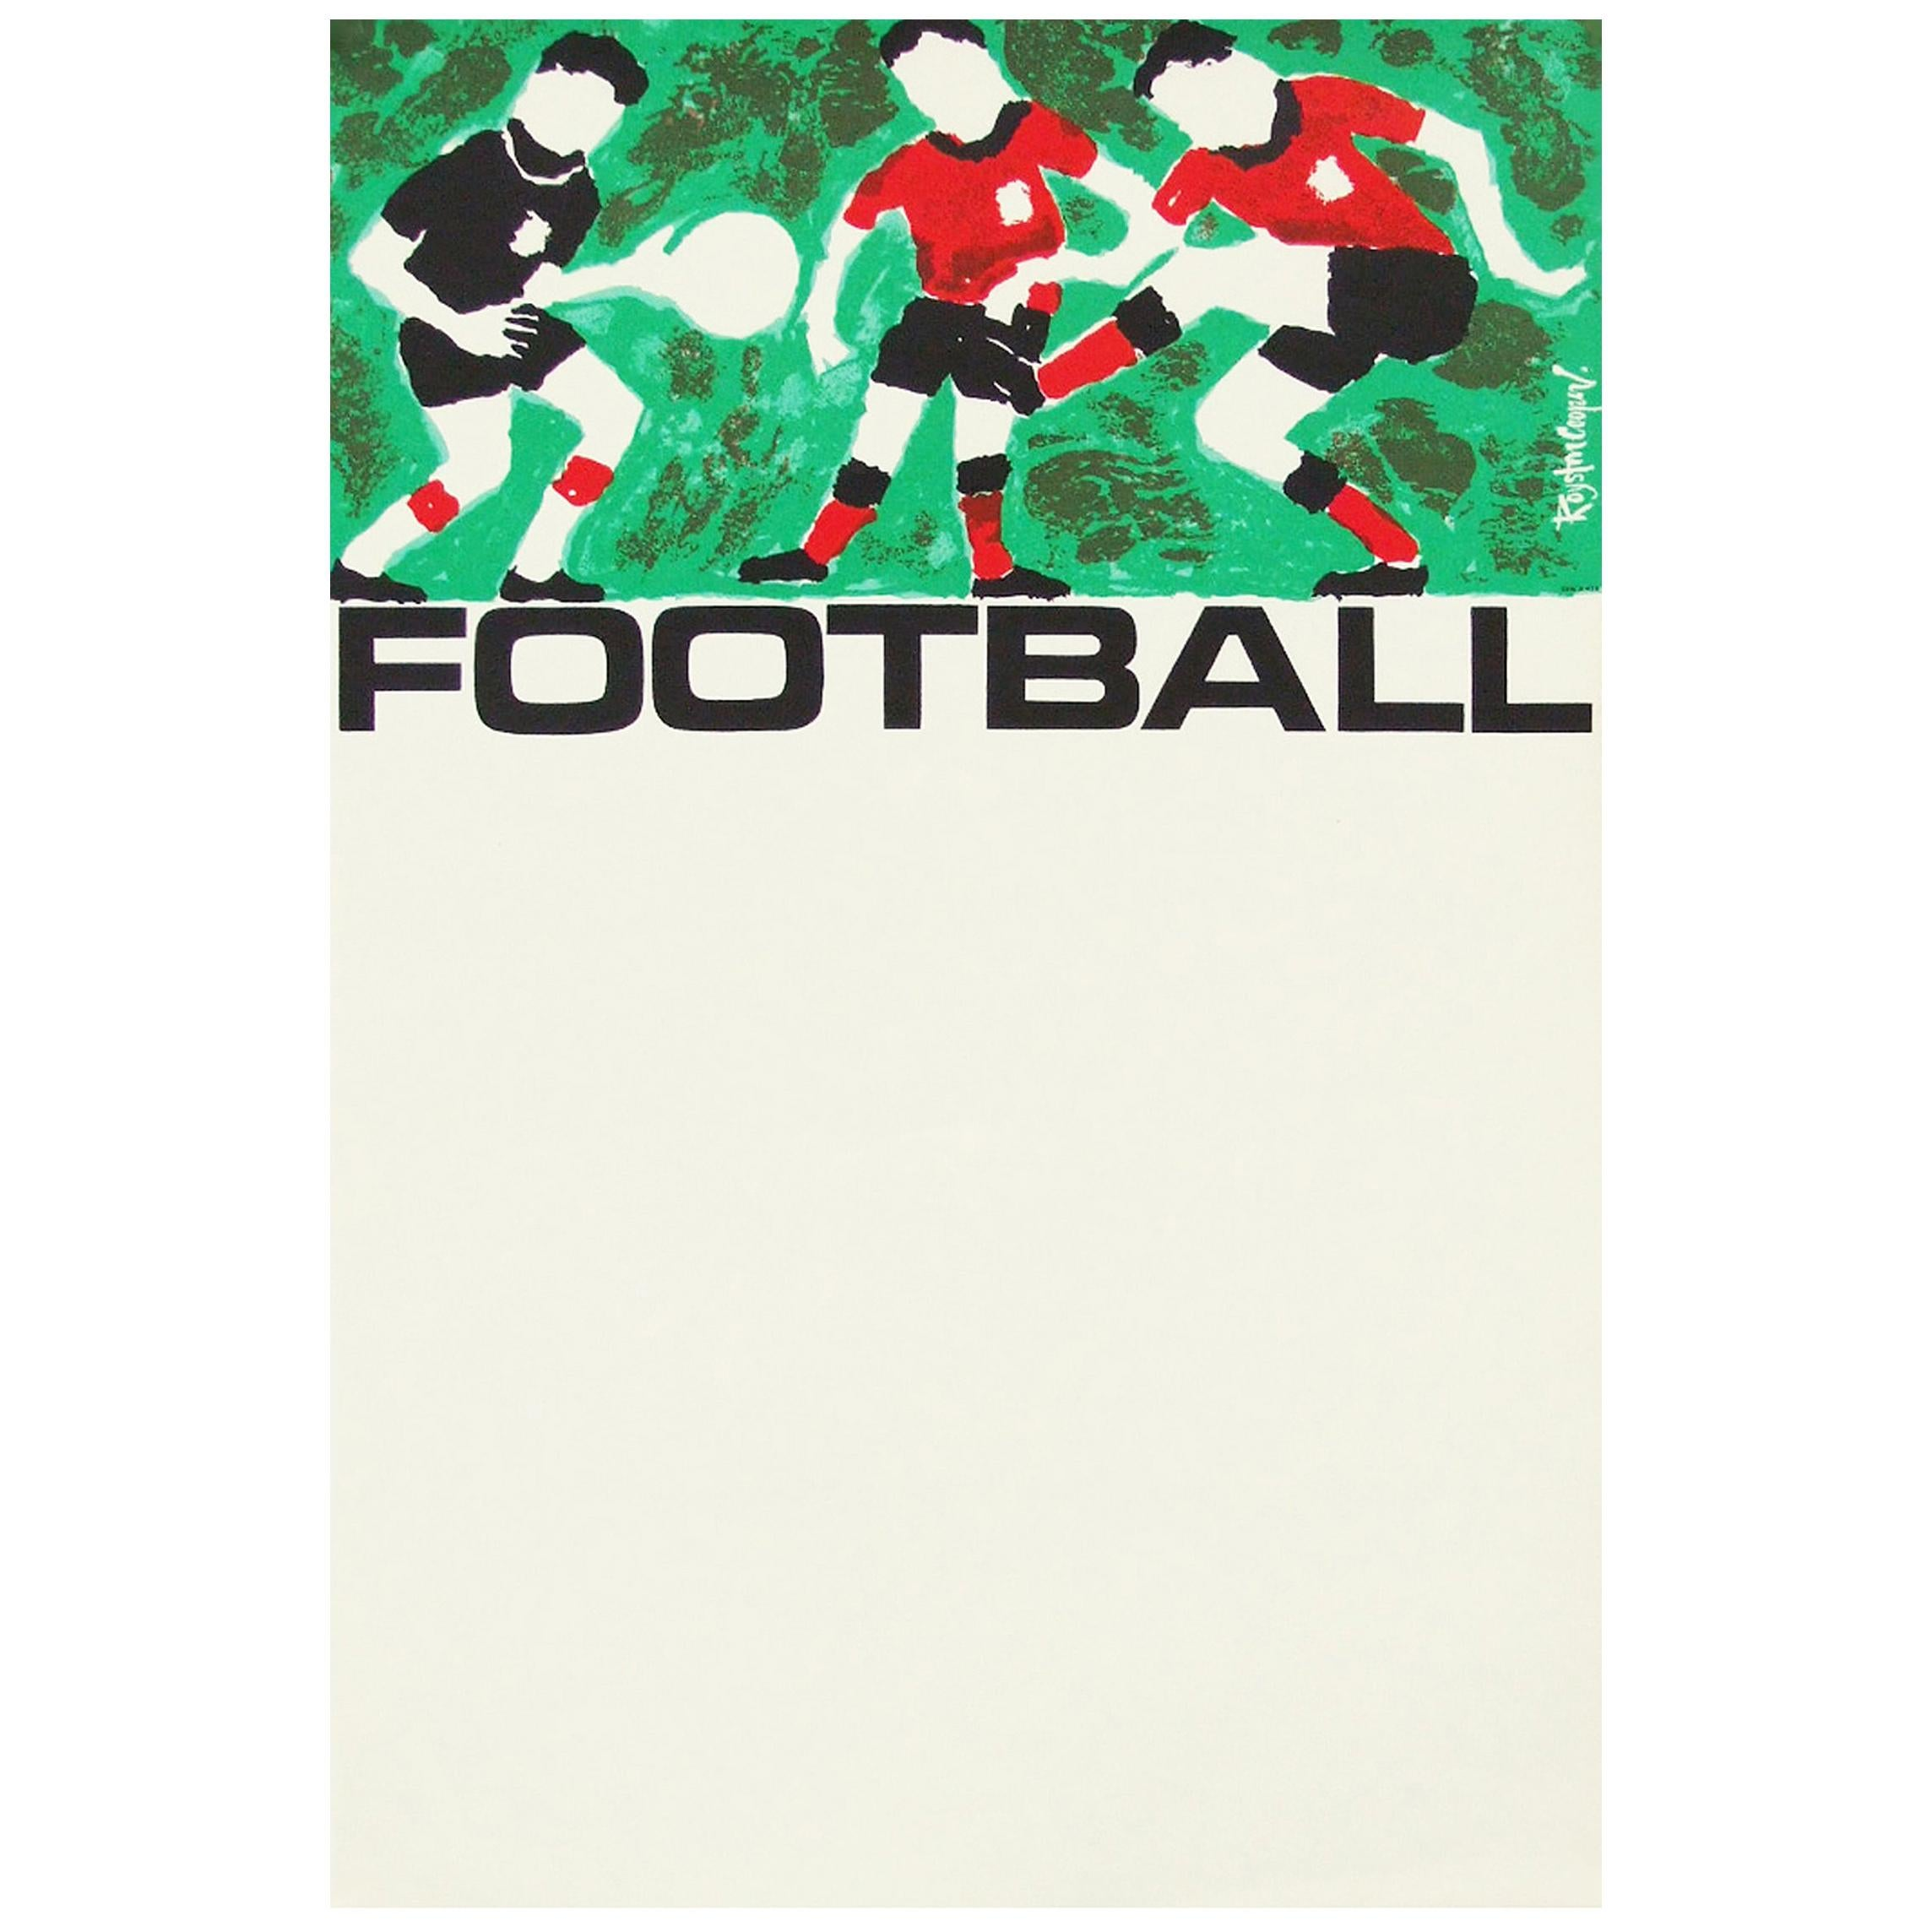 1960s Rare Vintage British Transport Soccer Football Poster by Royston Cooper